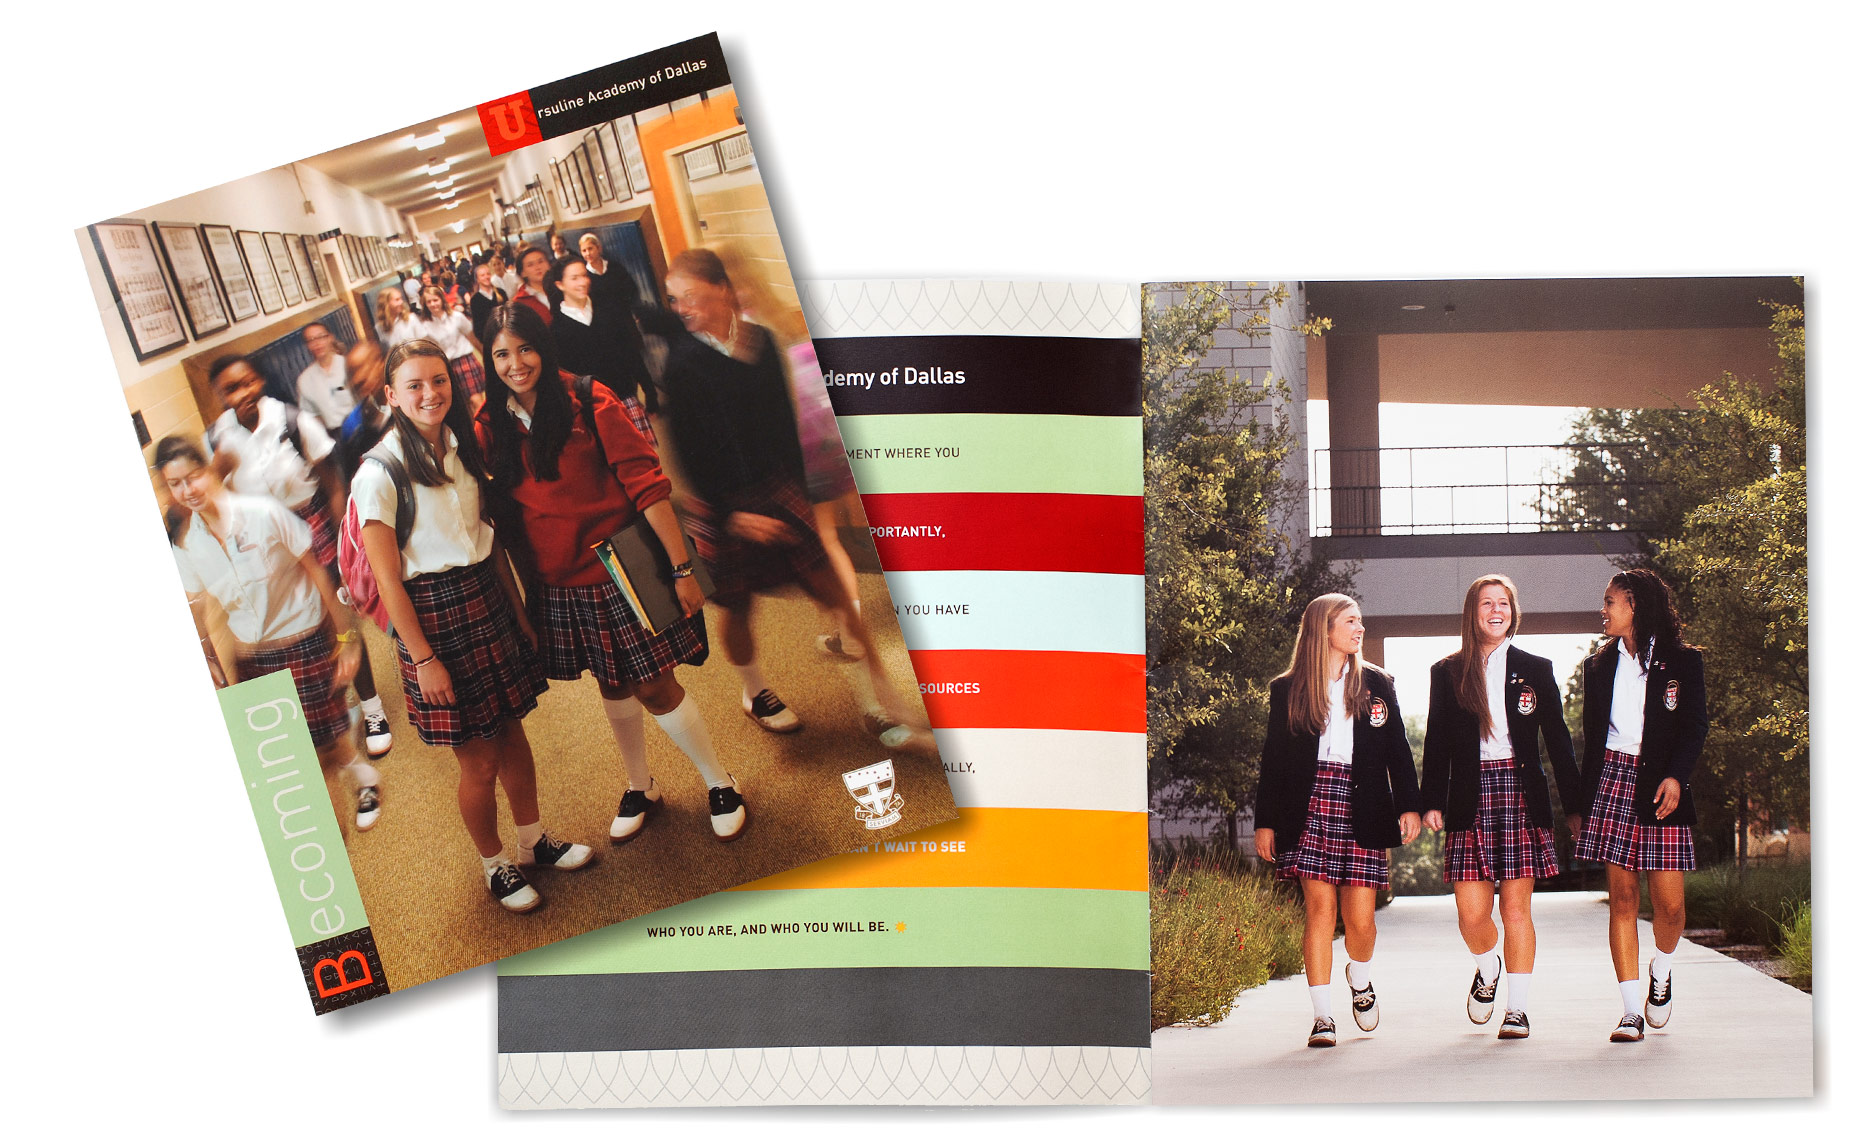 Ursuline Viewbook students cover and spread